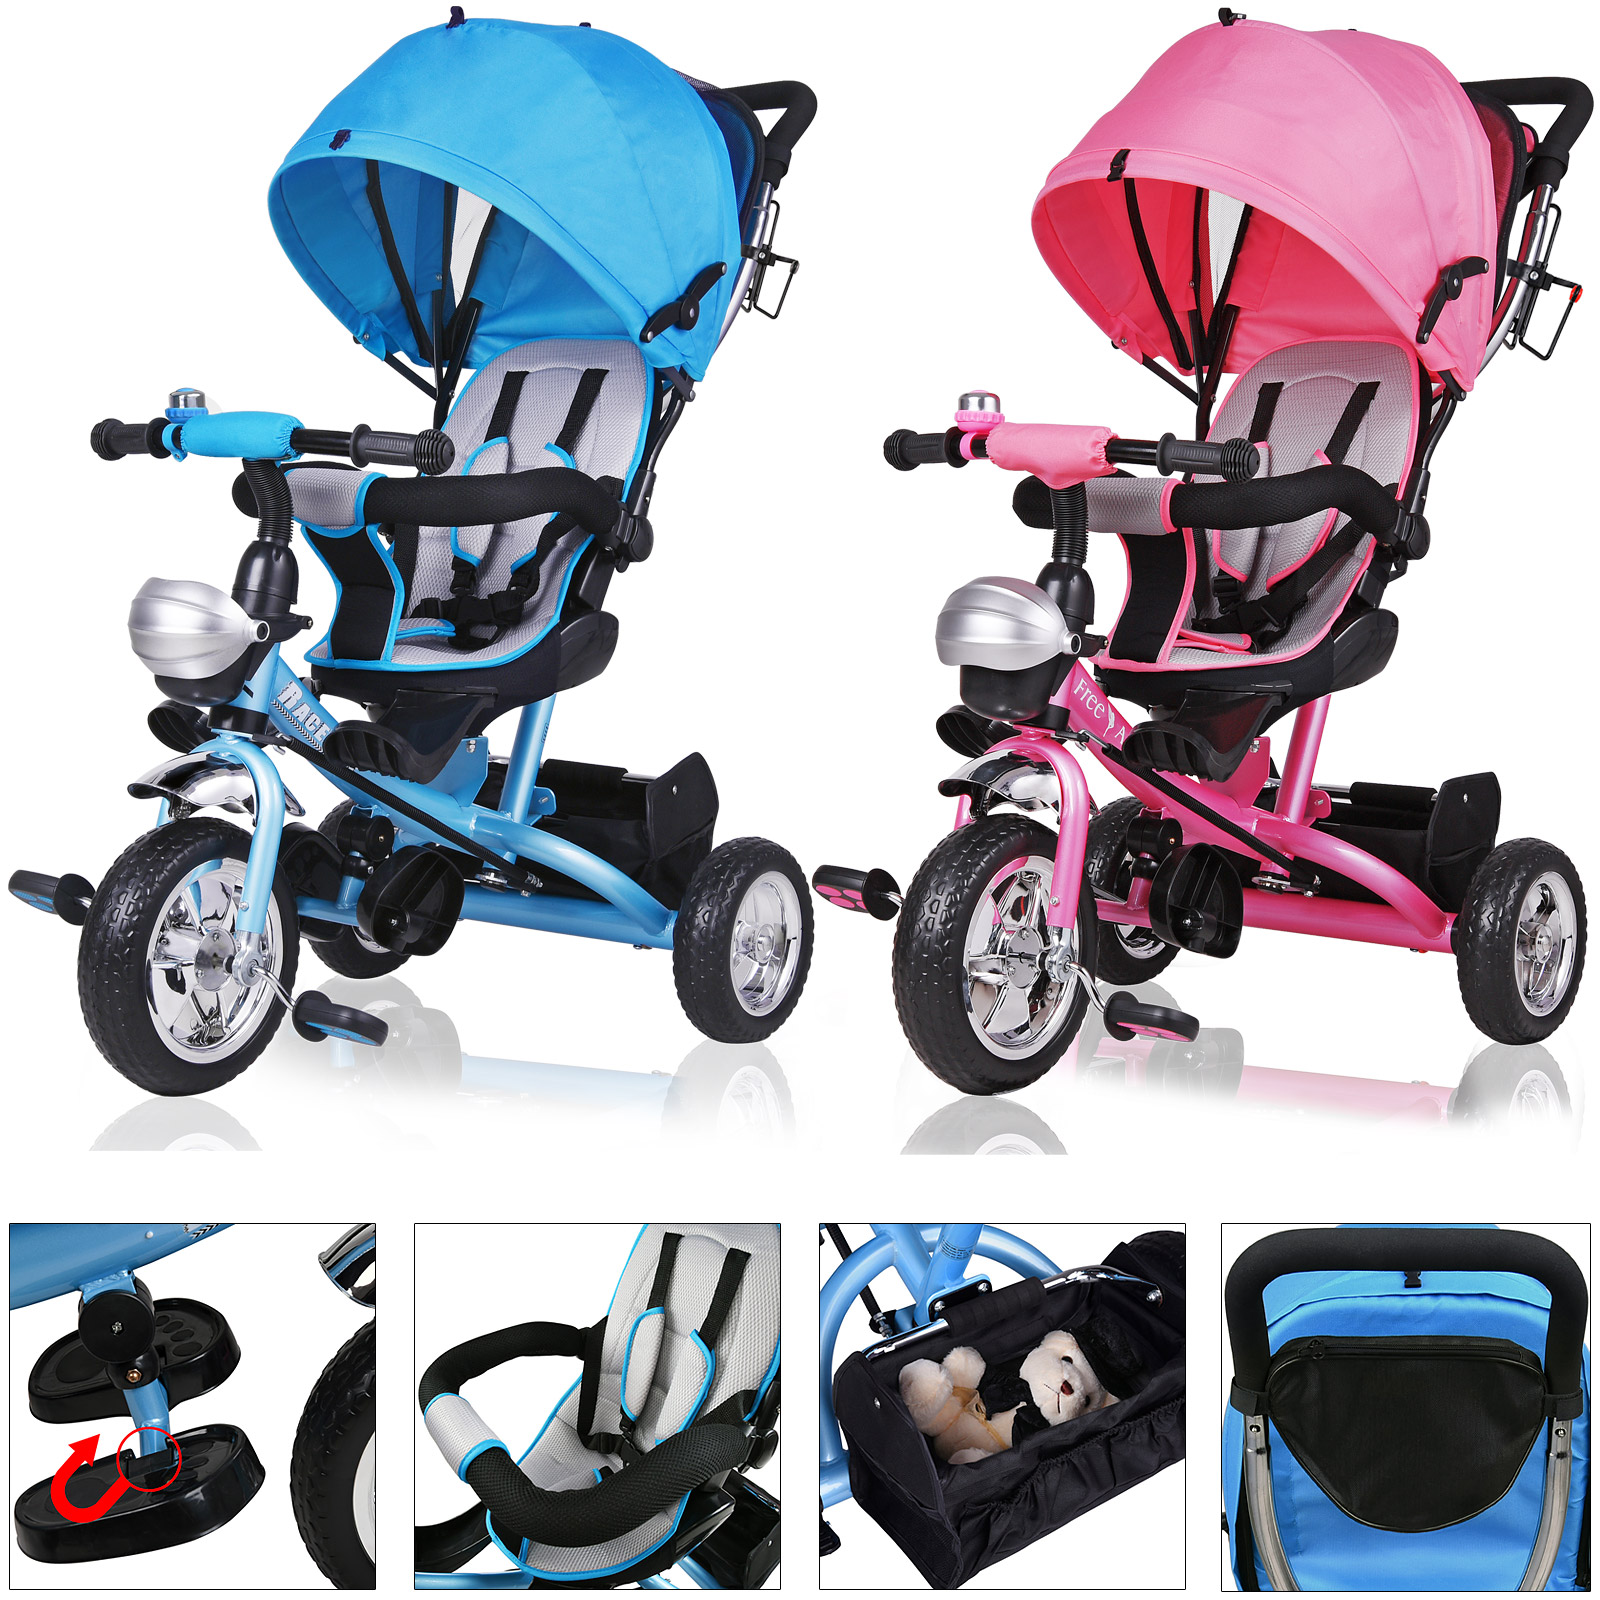 deuba dreirad kinderdreirad kinder lenkstange dach fahrrad baby kinderwagen ebay. Black Bedroom Furniture Sets. Home Design Ideas